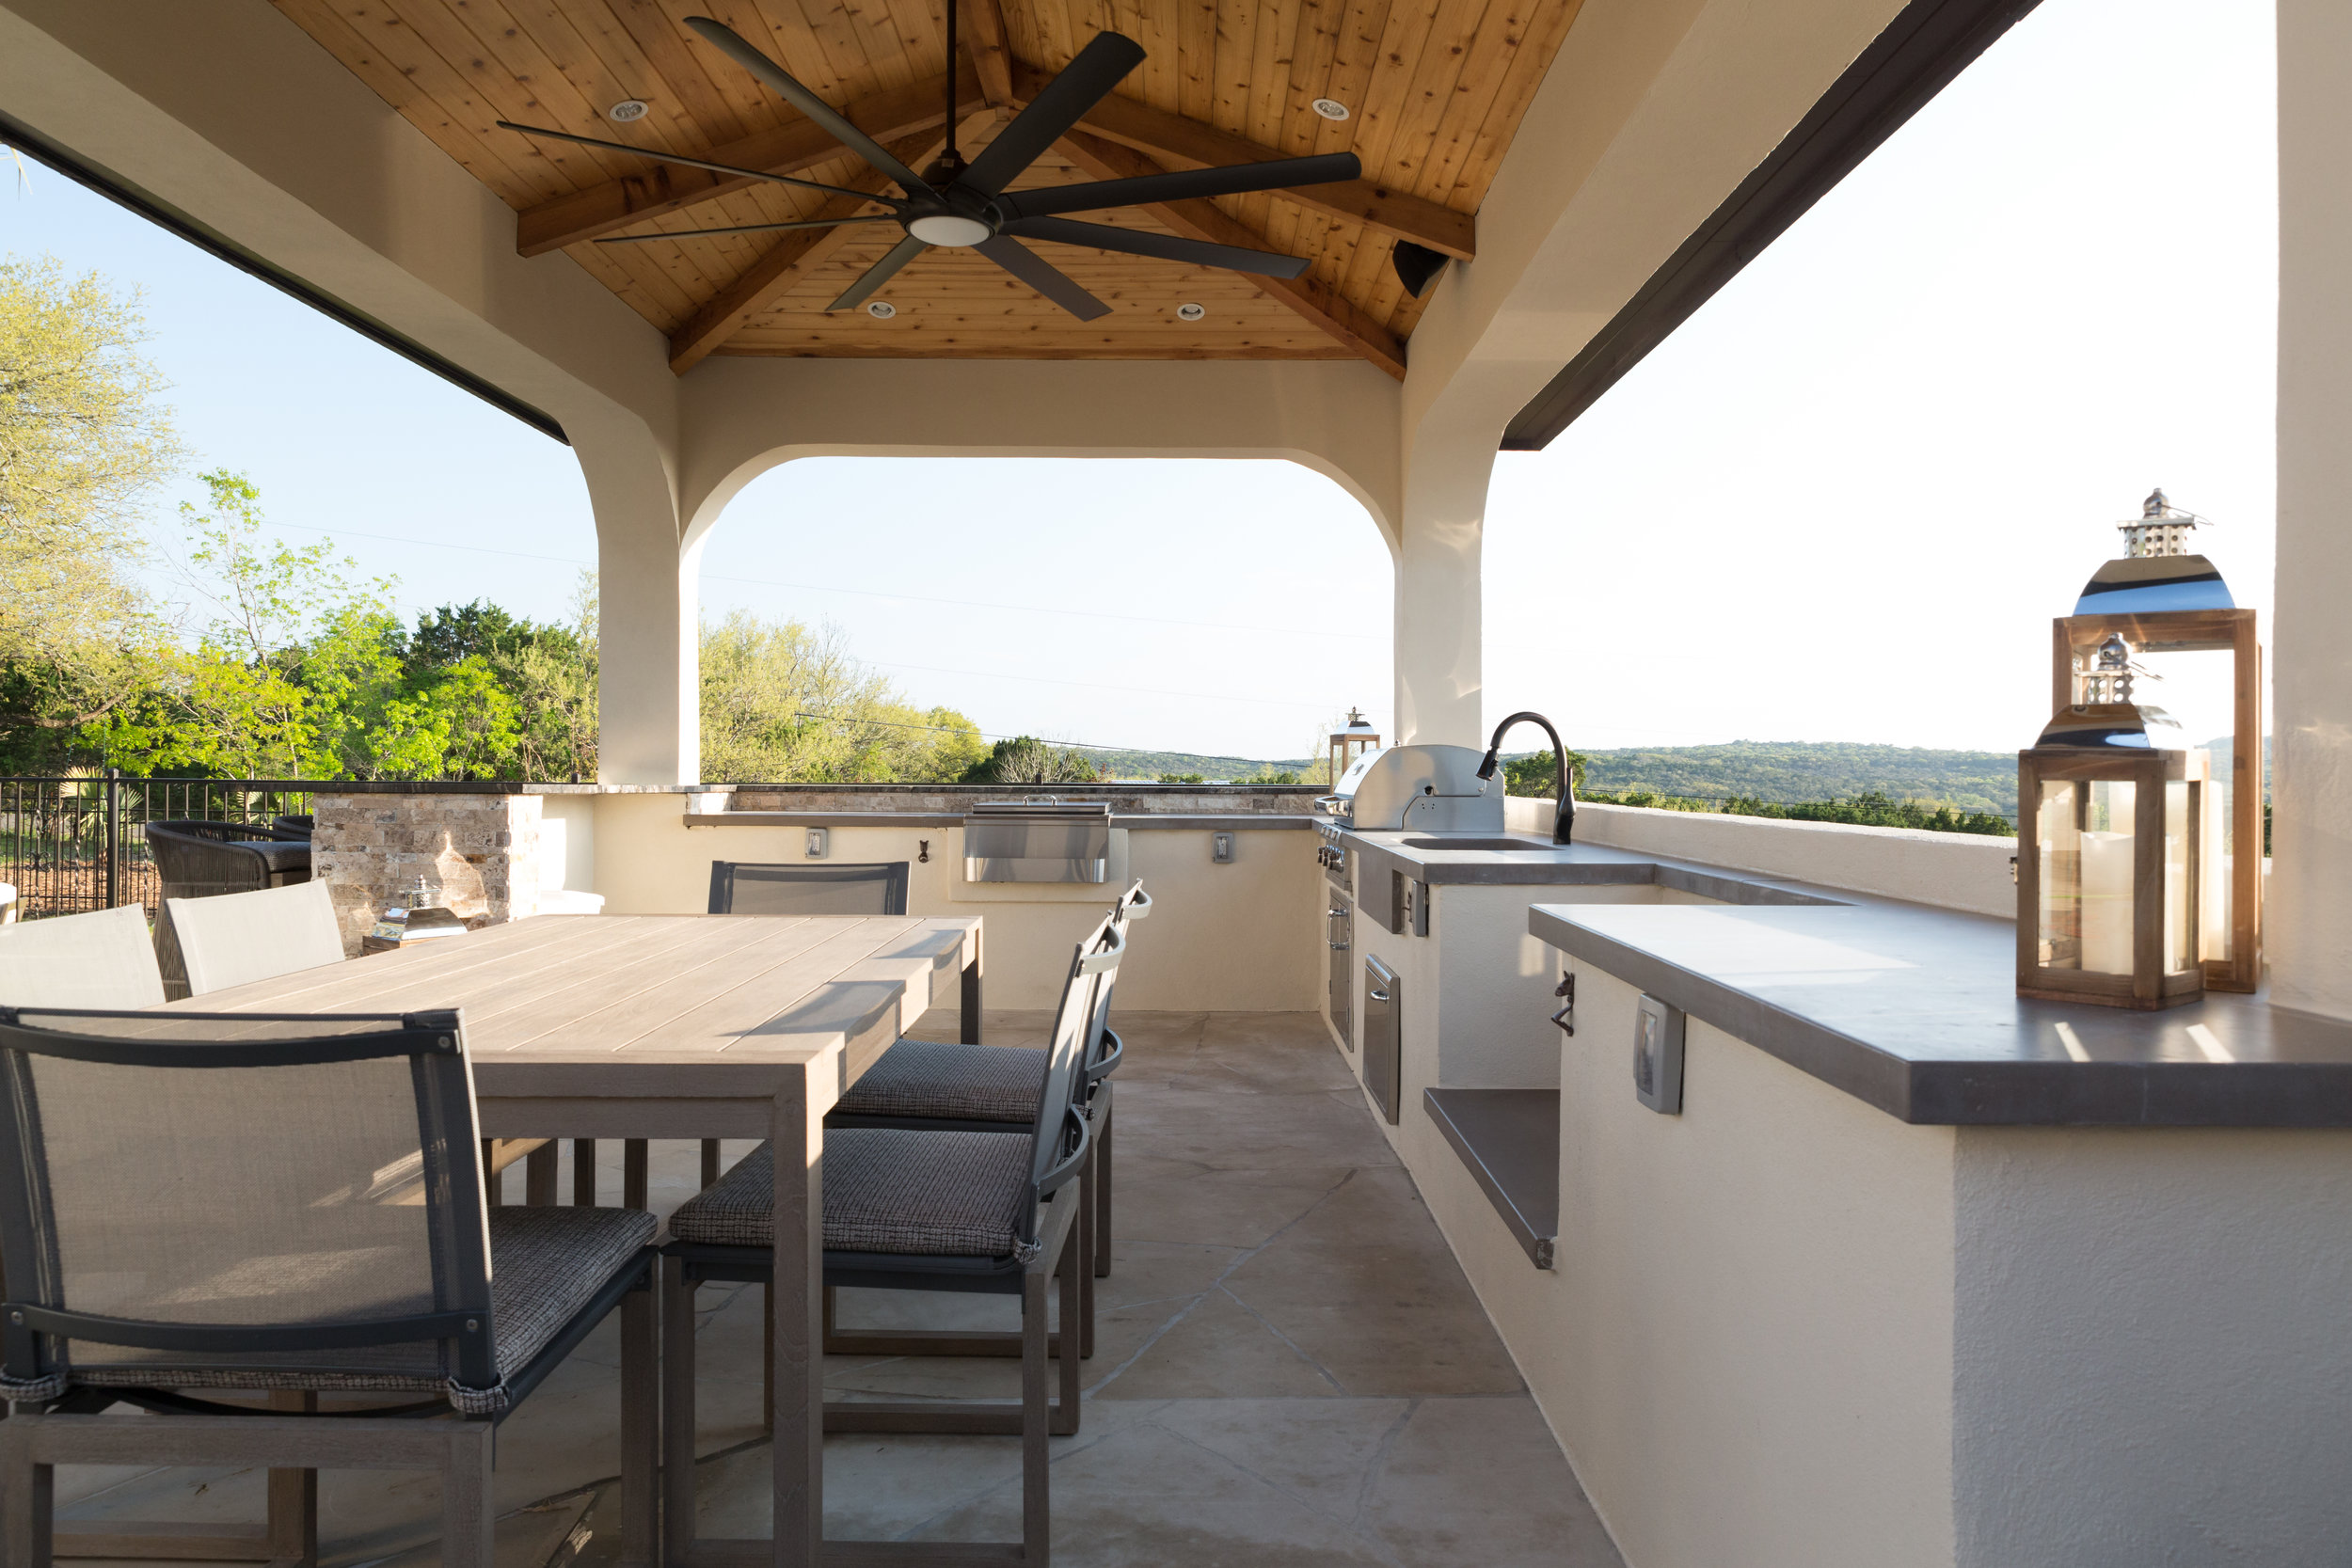 Cabana Kitchen and Table